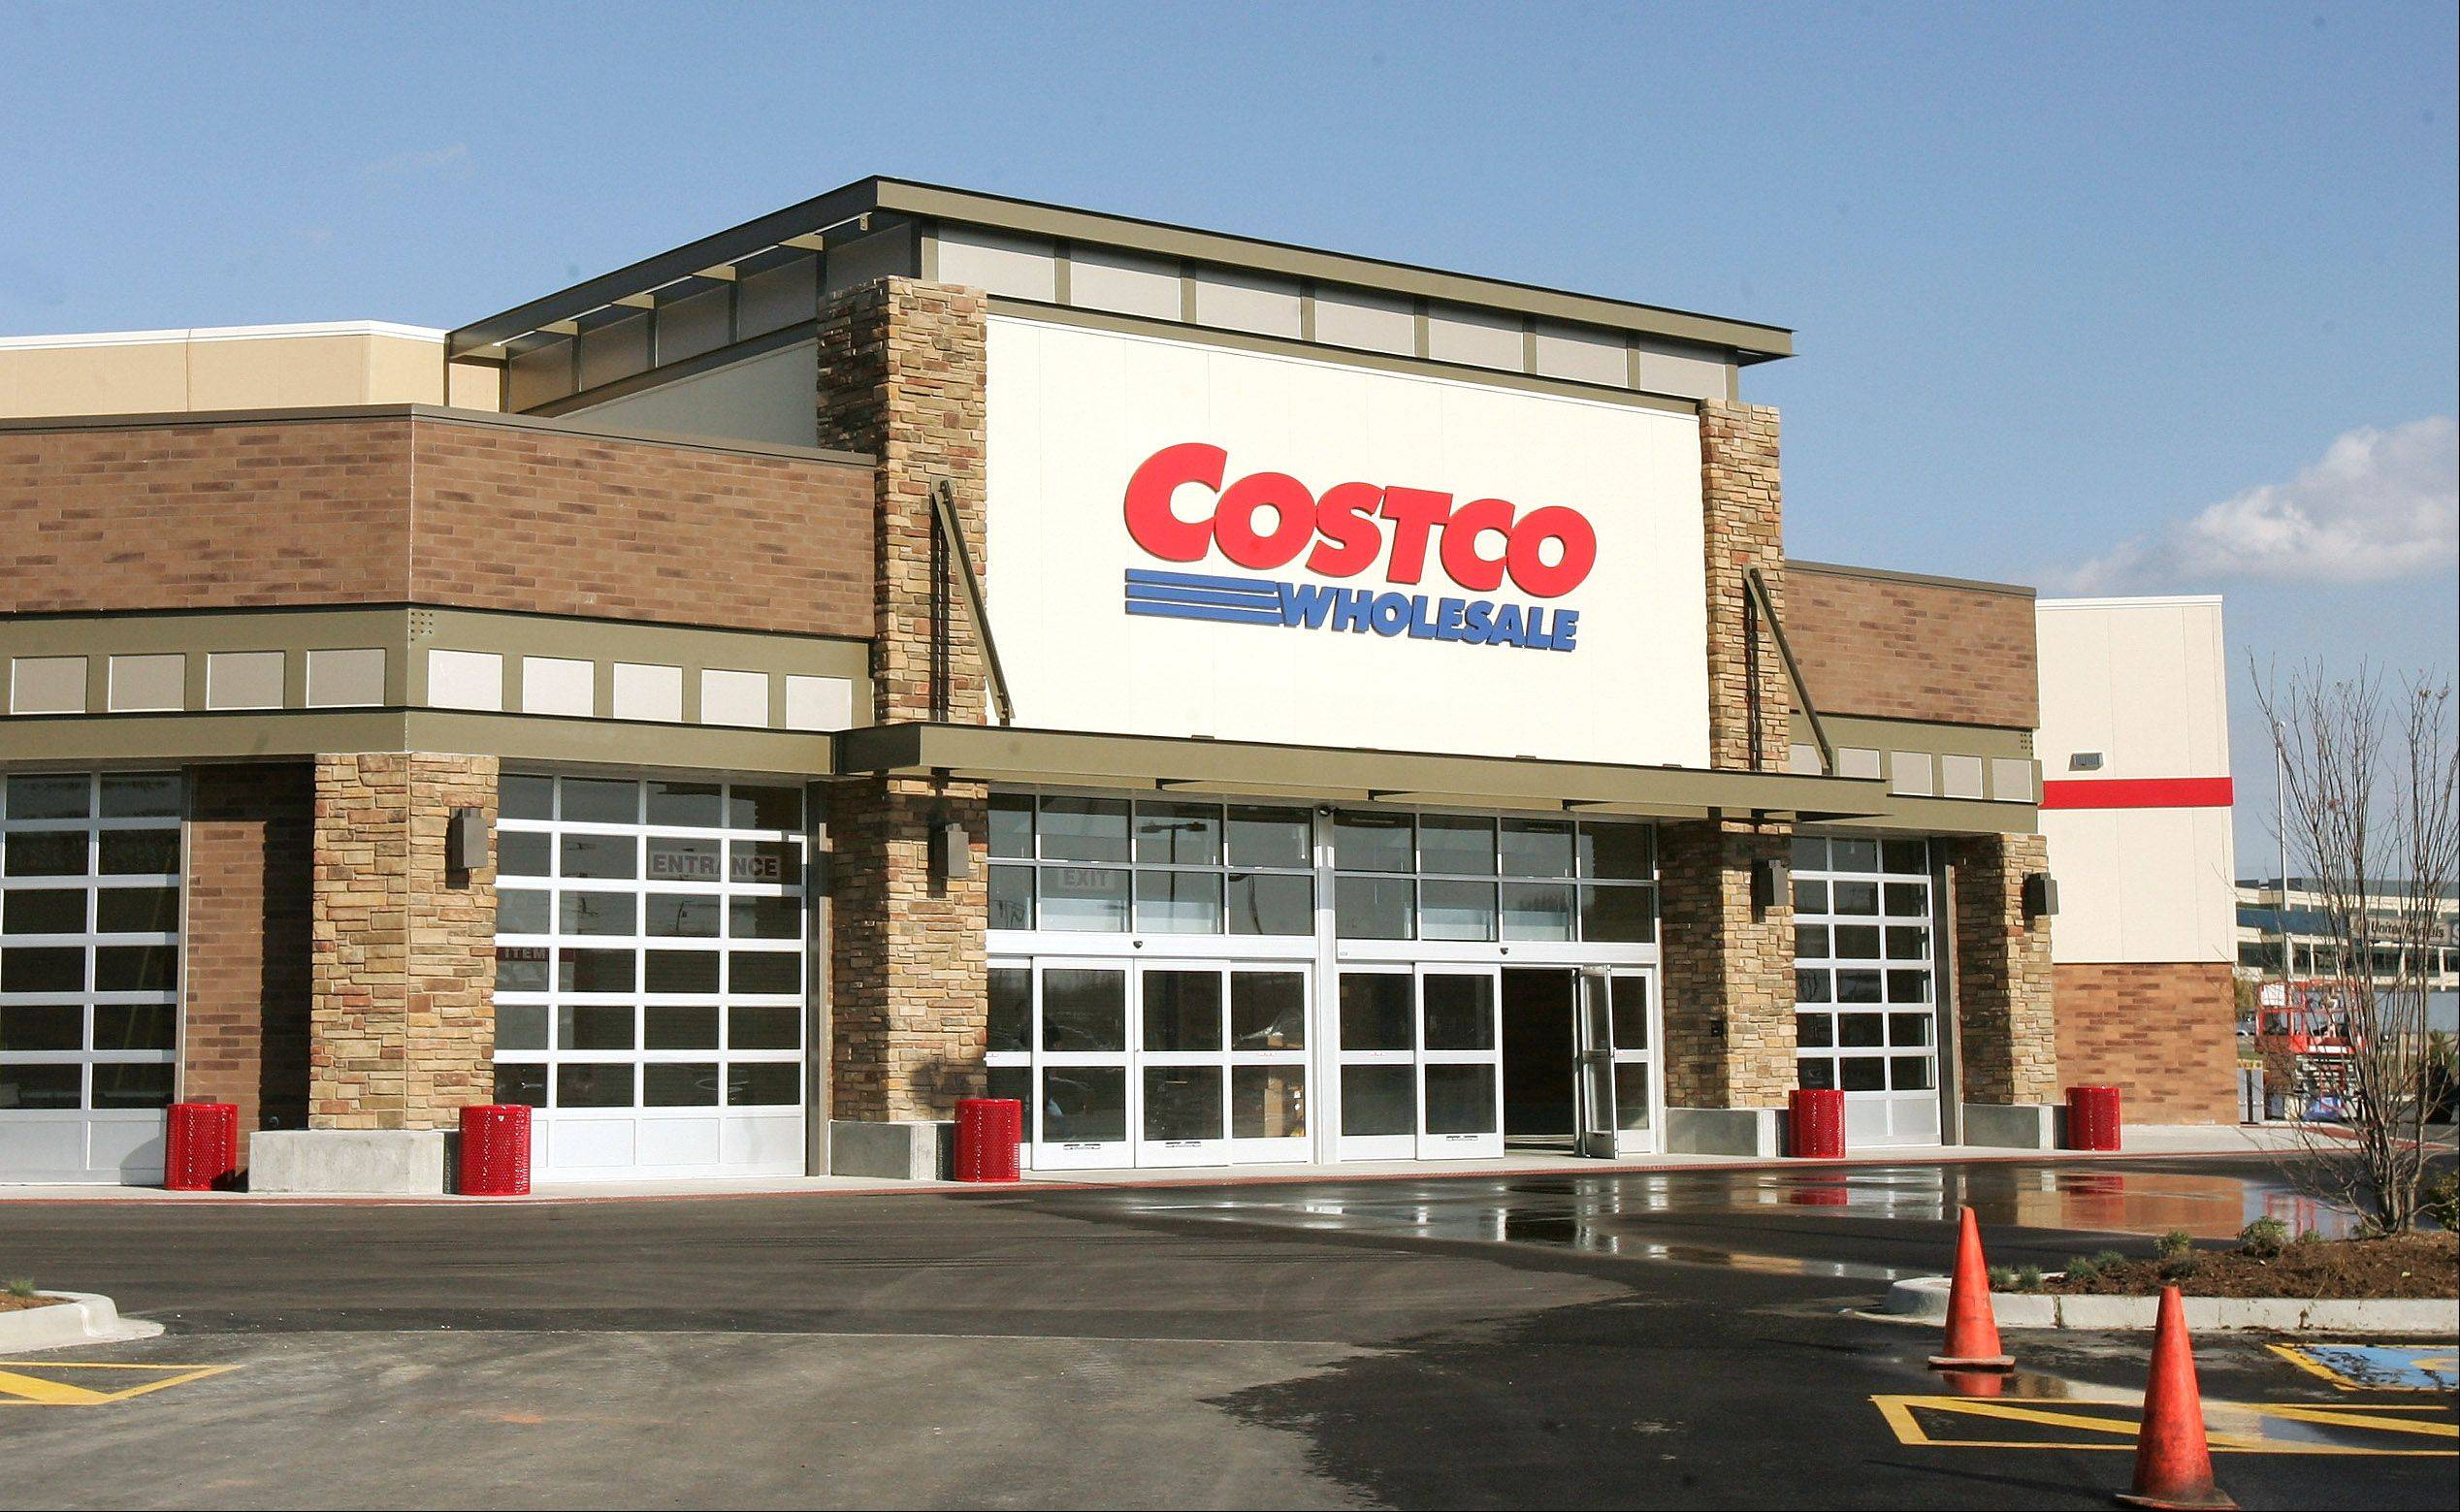 Costco Wholesale Corp. said it will buy out the partner in its Mexican joint venture for an amount equivalent to $760.4 million.